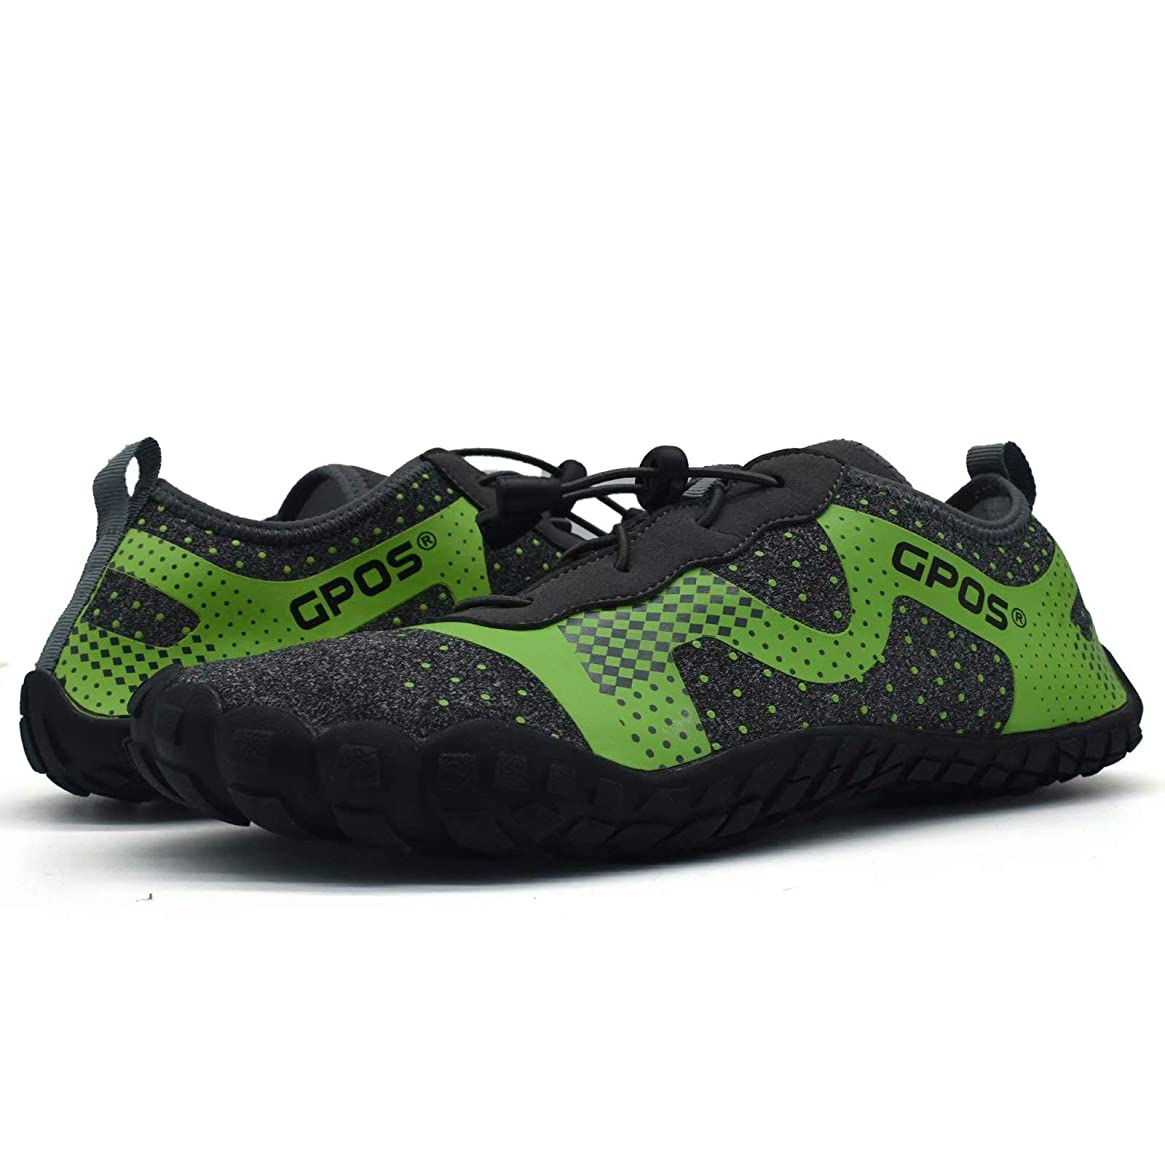 Quick Drying Water Shoes Men Flexible Barefoot Lace up Slip on Aqua Shoes Rubber Sole